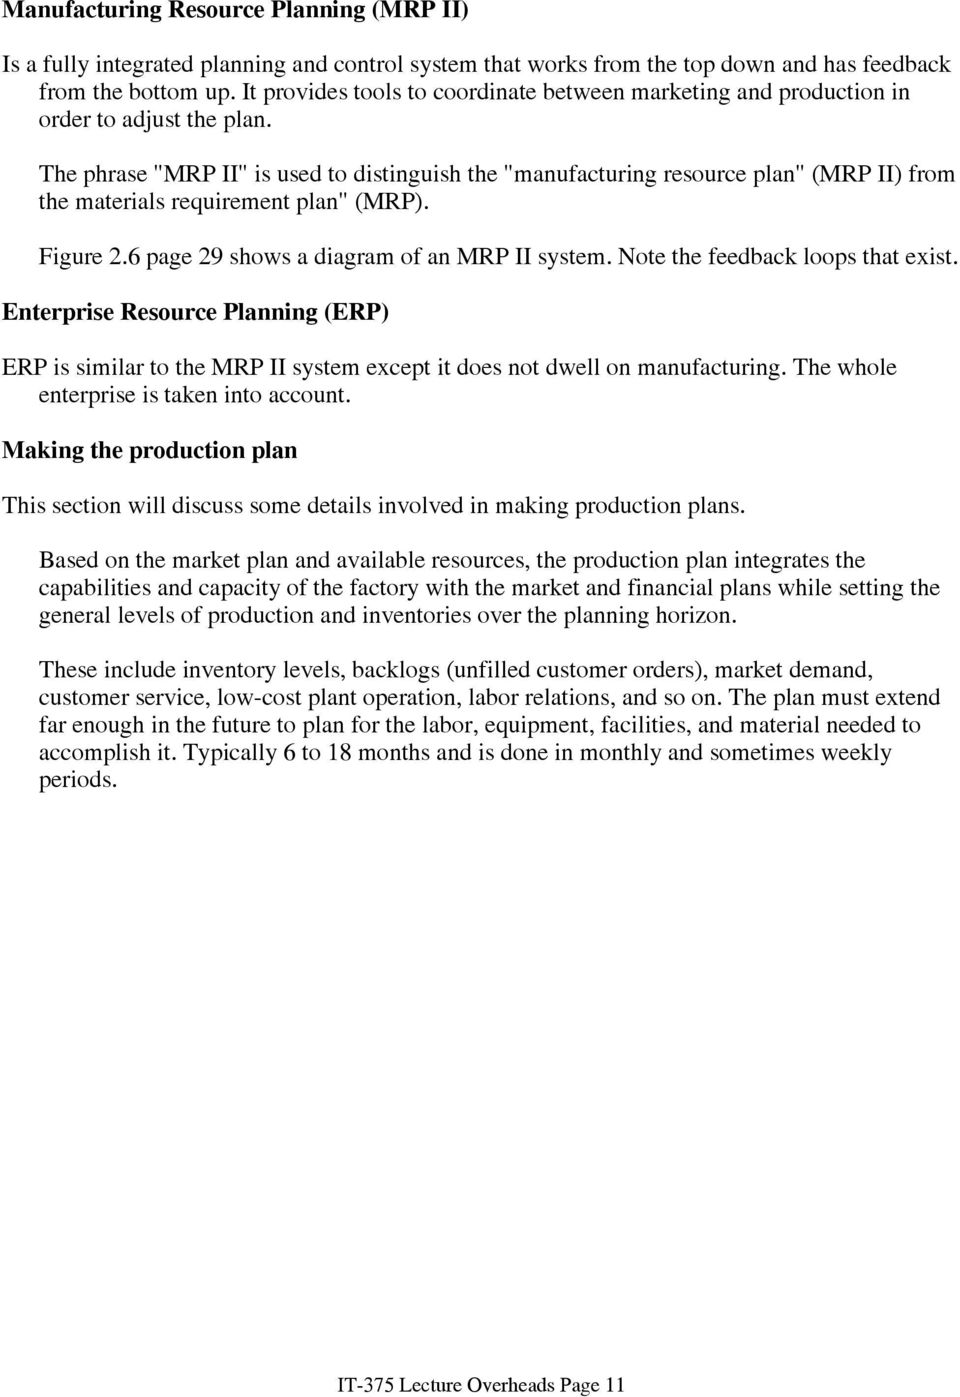 medium resolution of the phrase mrp ii is used to distinguish the manufacturing resource plan